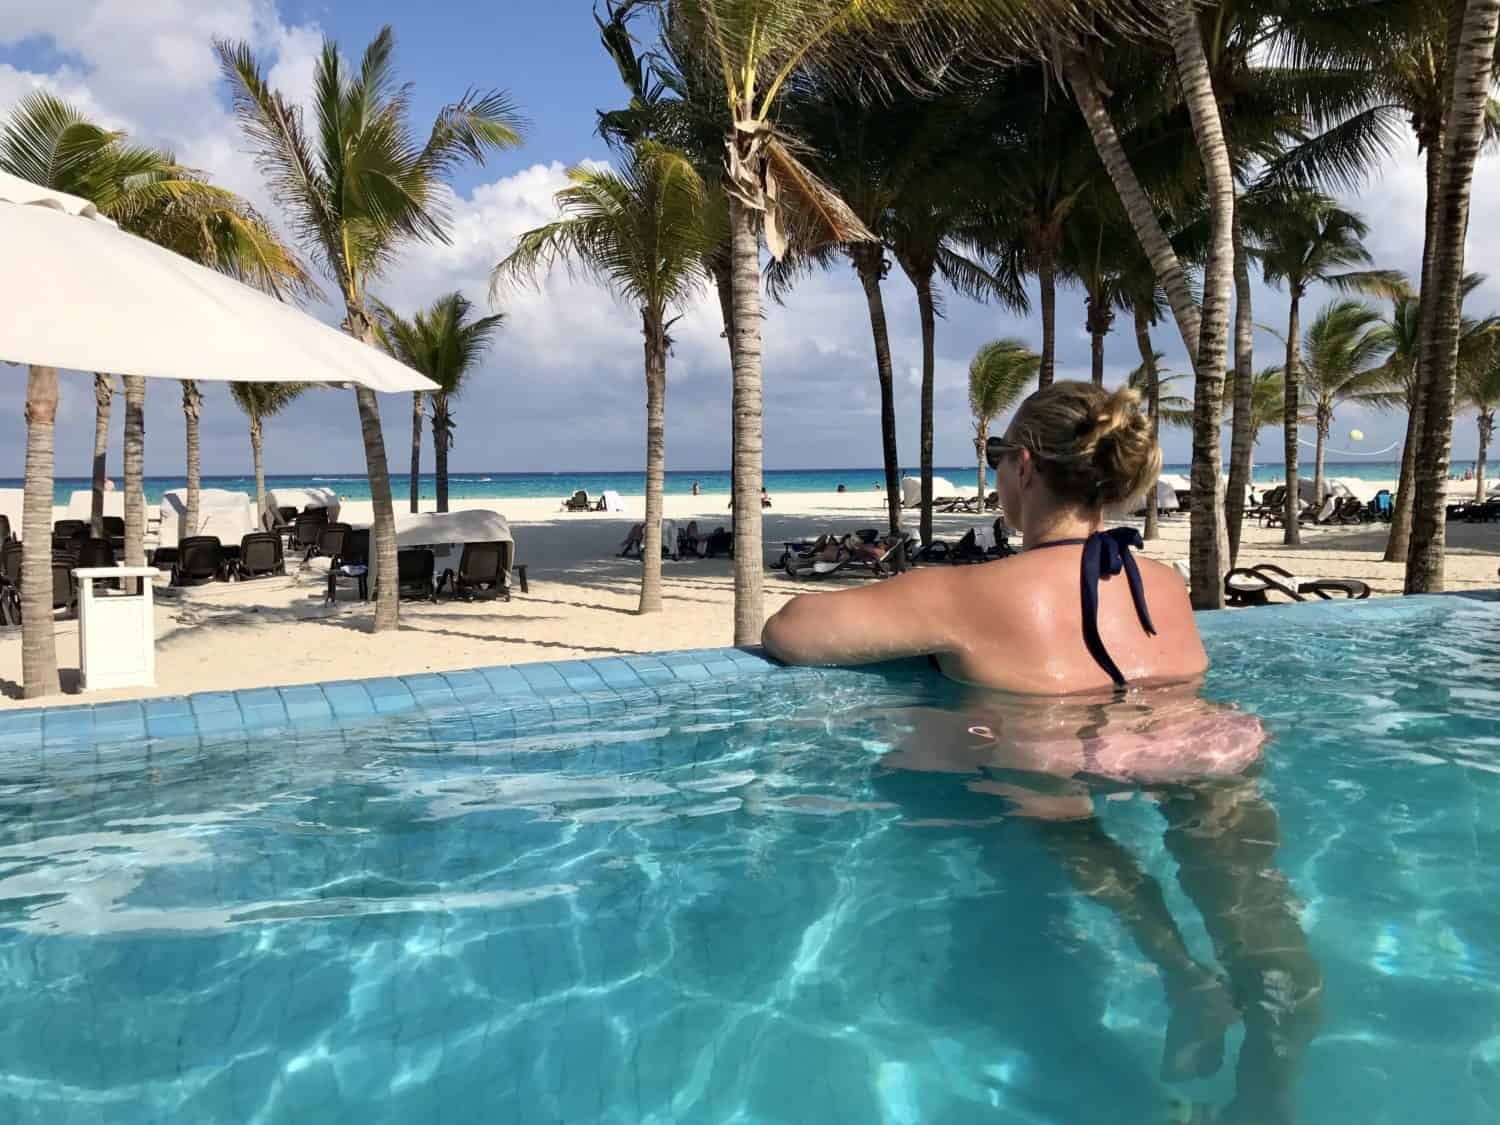 All about my first all-inclusive resort experience...what I learned, what I loved, what I'd do differently | Royal Hideaway Playacar in Mexico | all-inclusive resorts, beach vacations, how to plan a beach vacation #mexico #allinclusive #resort #beach #playadelcarmen